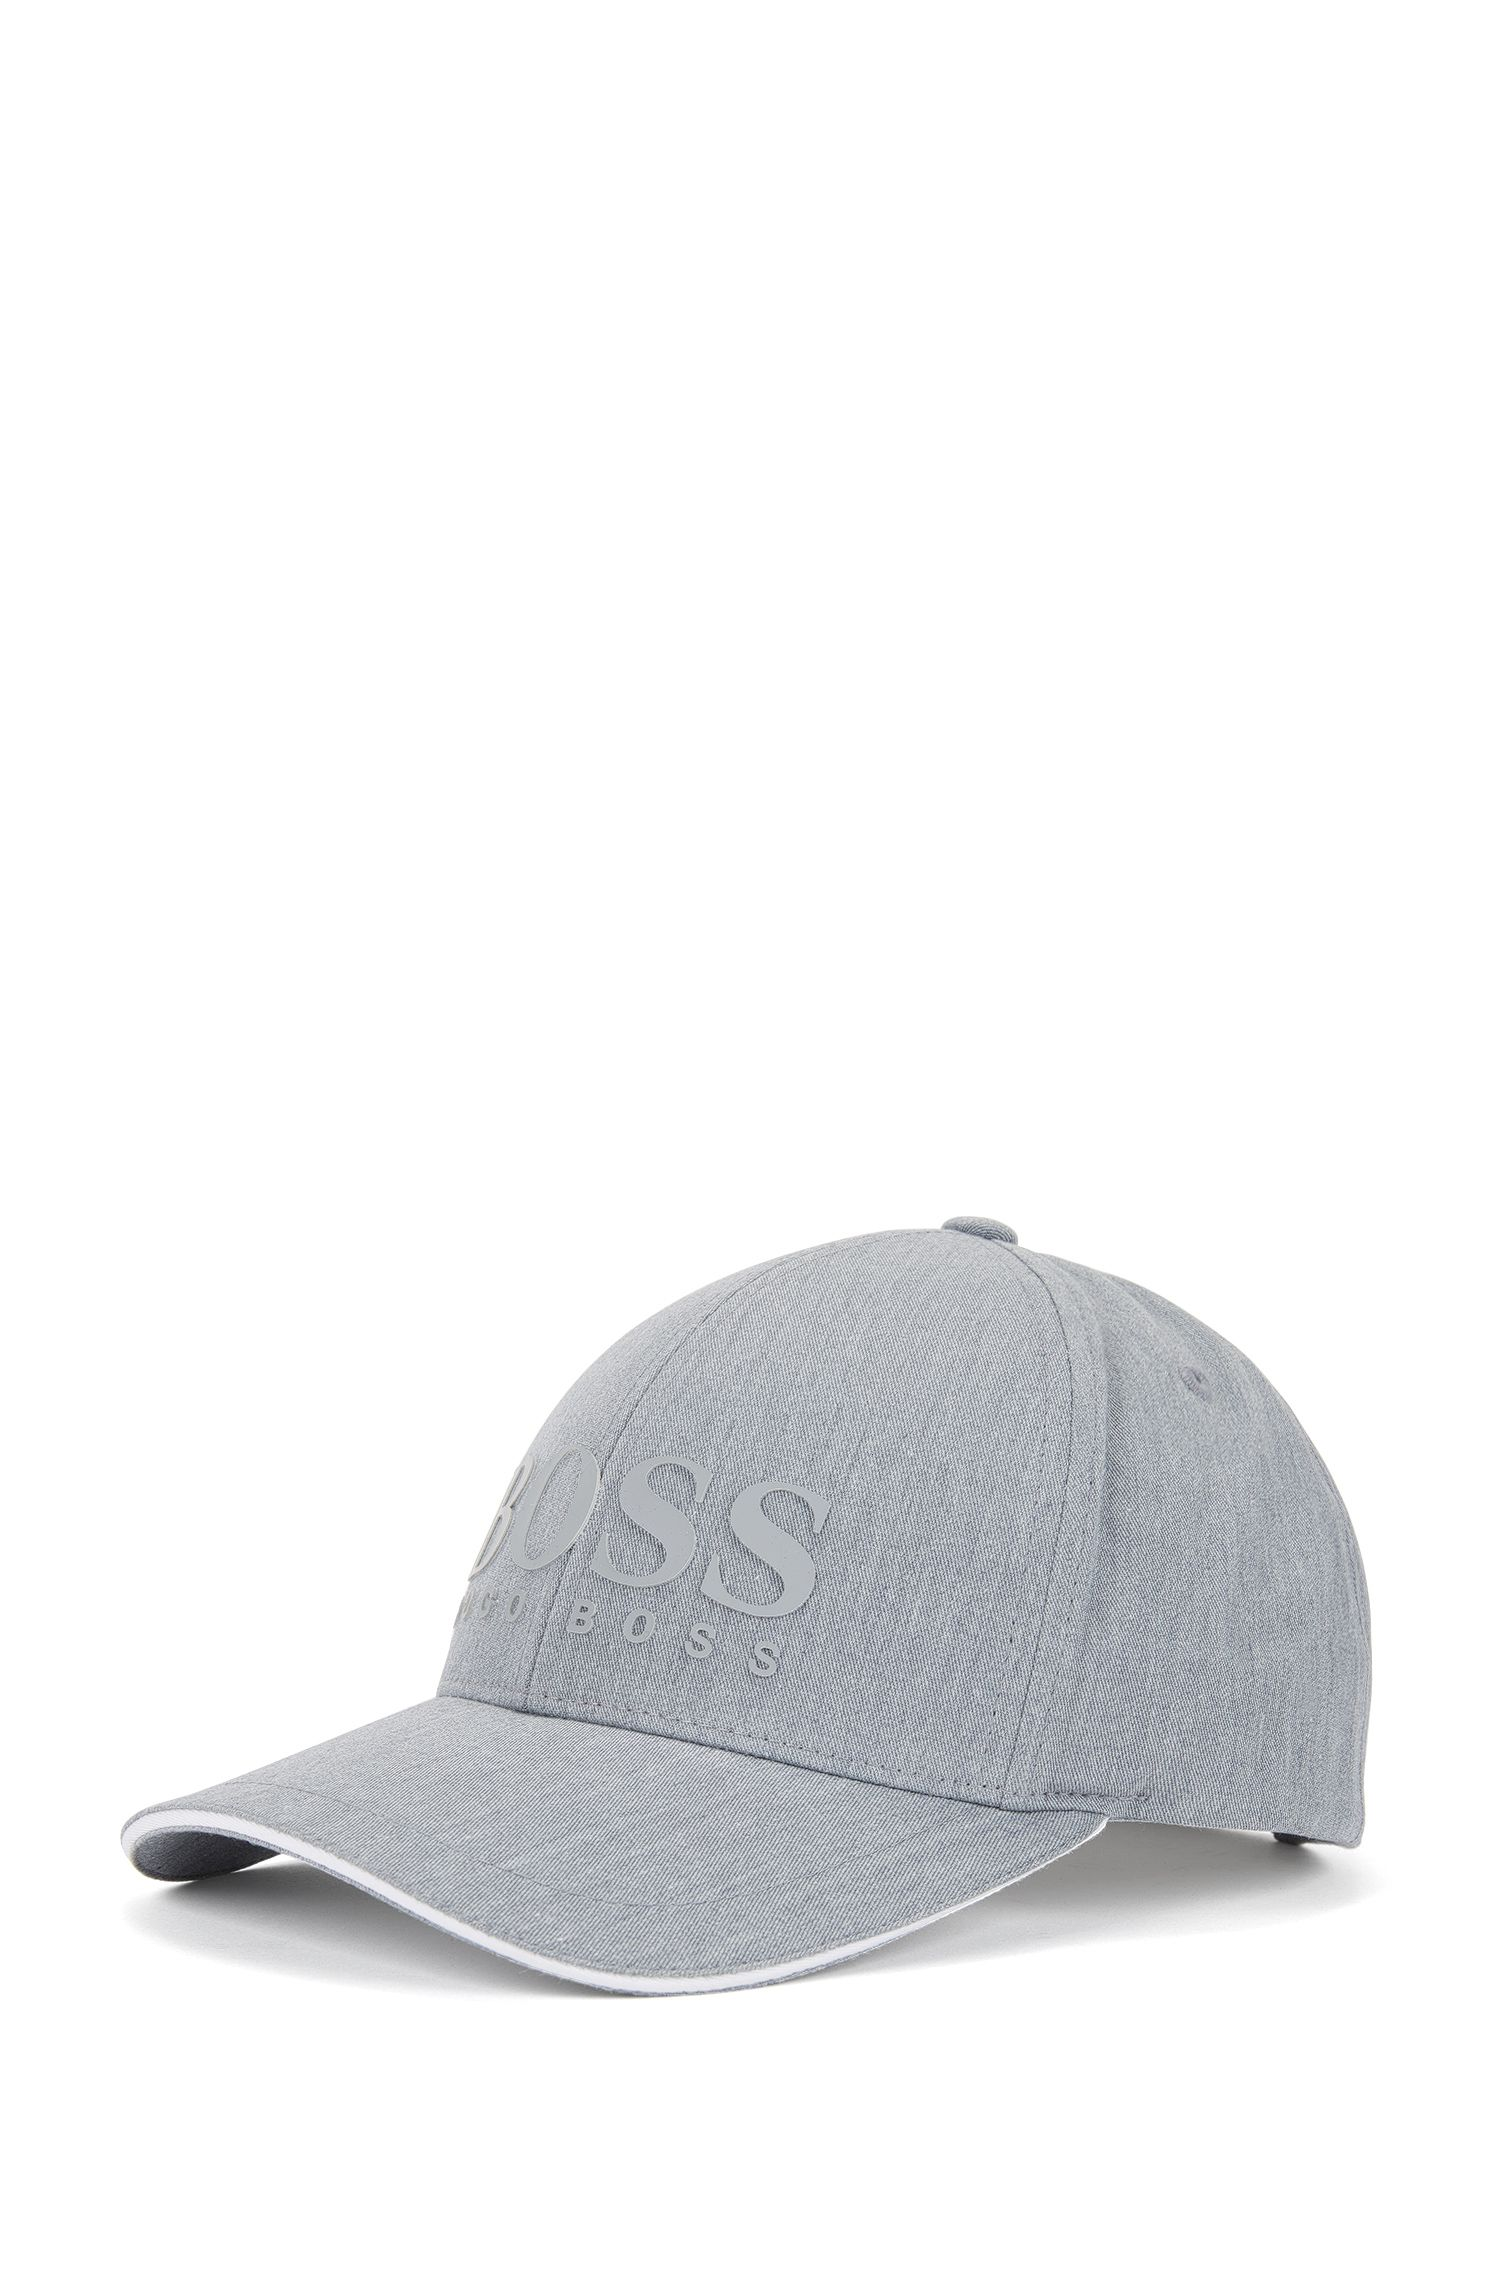 Logo Baseball Cap | BOSS Cap, Light Grey